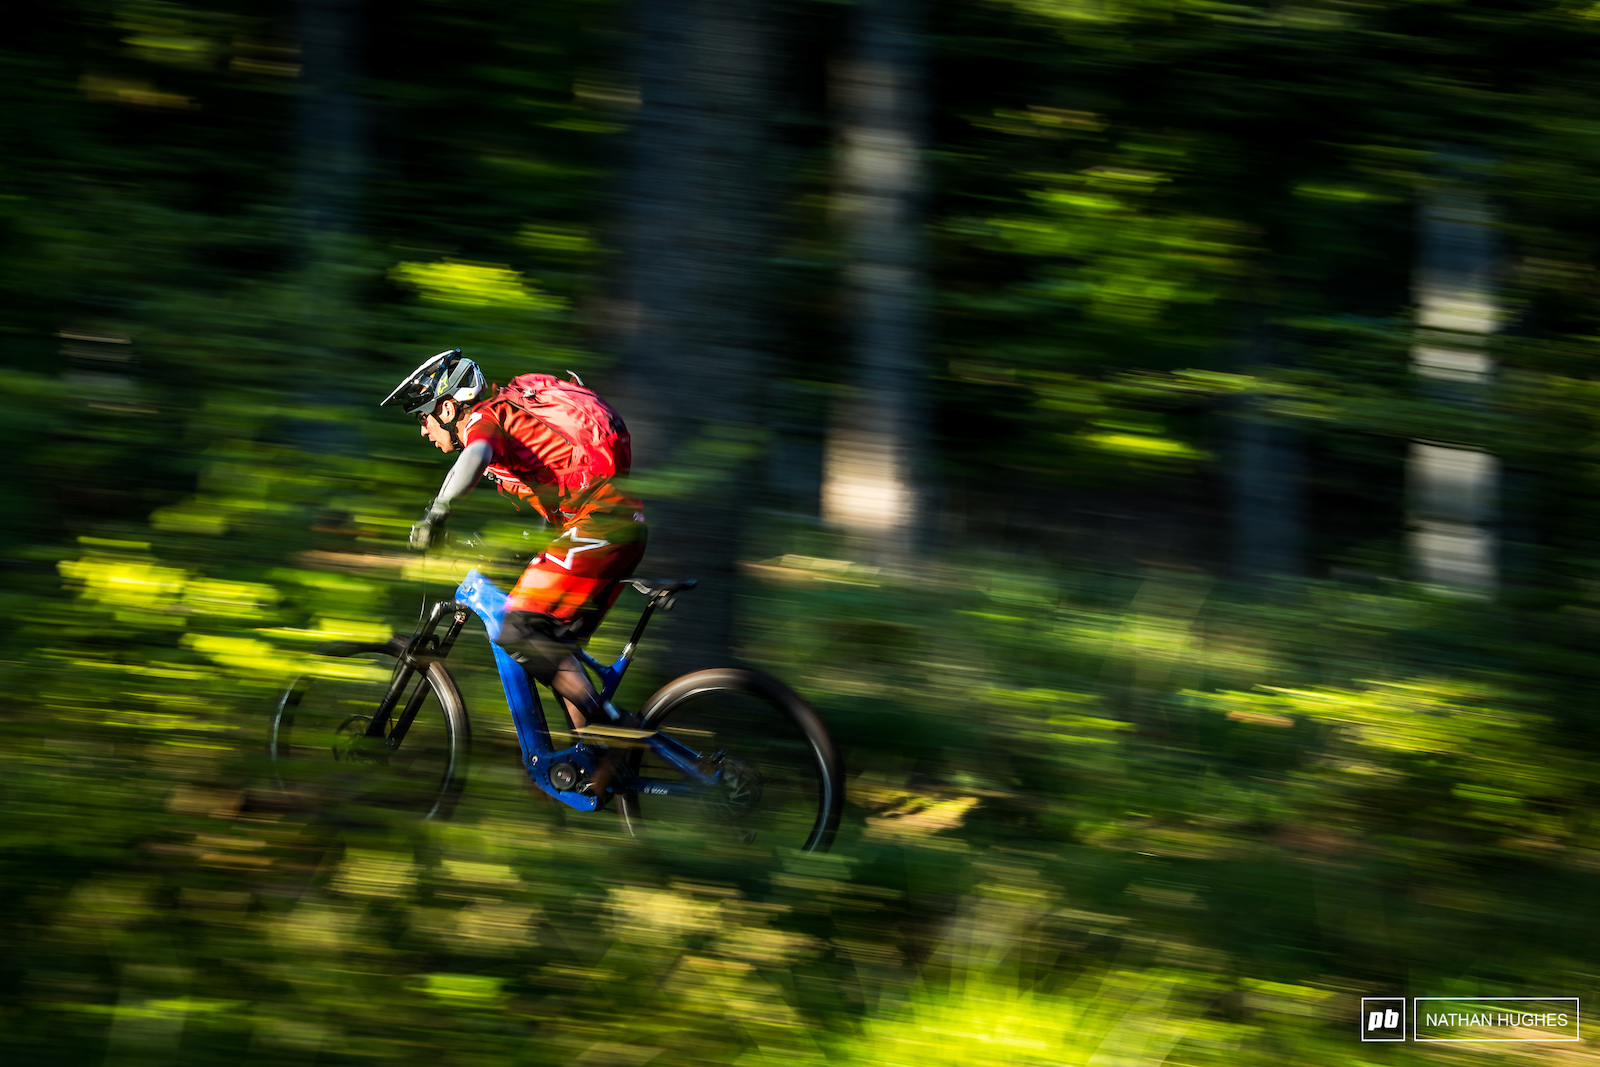 That s right... uphill pans. Now possible with some help from modern technology. Jerome Clementz flies through French forest.